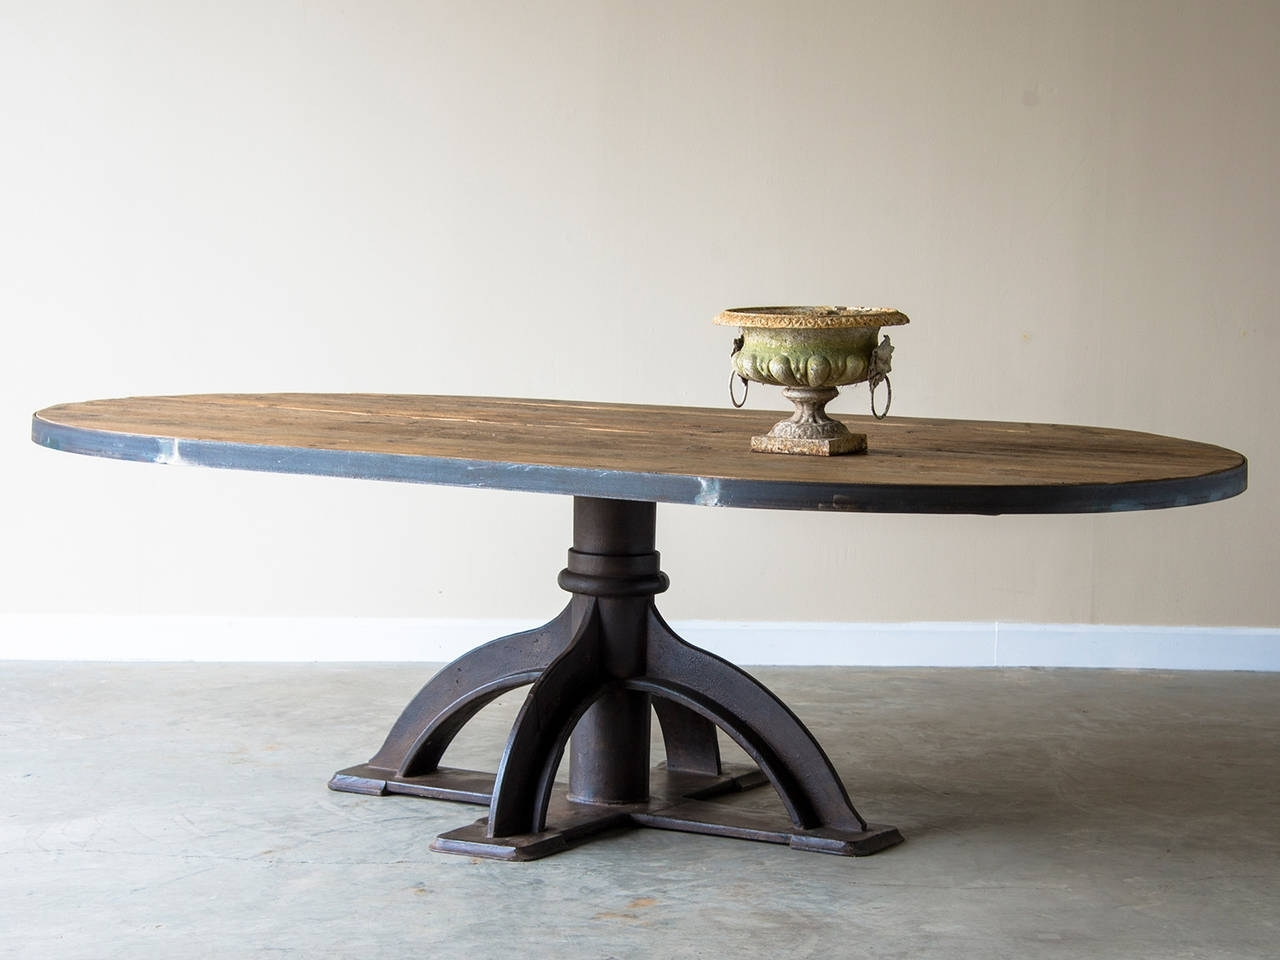 Fashionable Oval Reclaimed Wood Dining Tables Intended For Oval Table, Industrial Fitting Base, Holland, Circa 1920, Reclaimed (View 11 of 25)